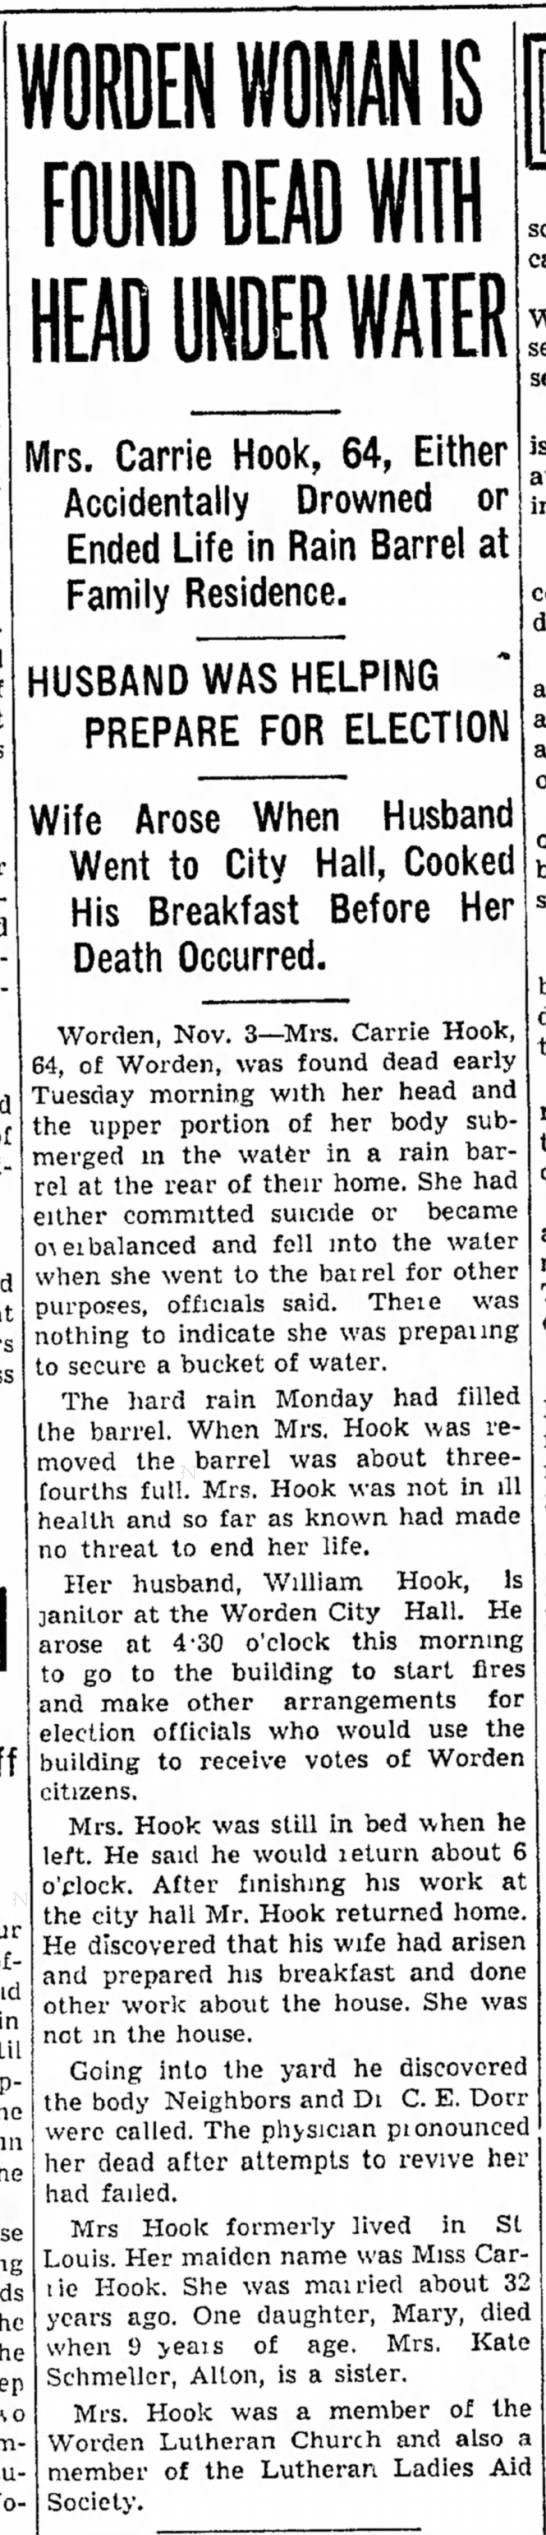 Carrie Janssen Johnson Hook, revised clip, 3 Nov 1936, Edwardsville Intelligencer - was third dead of hard- sector to Mrs. Carrie...